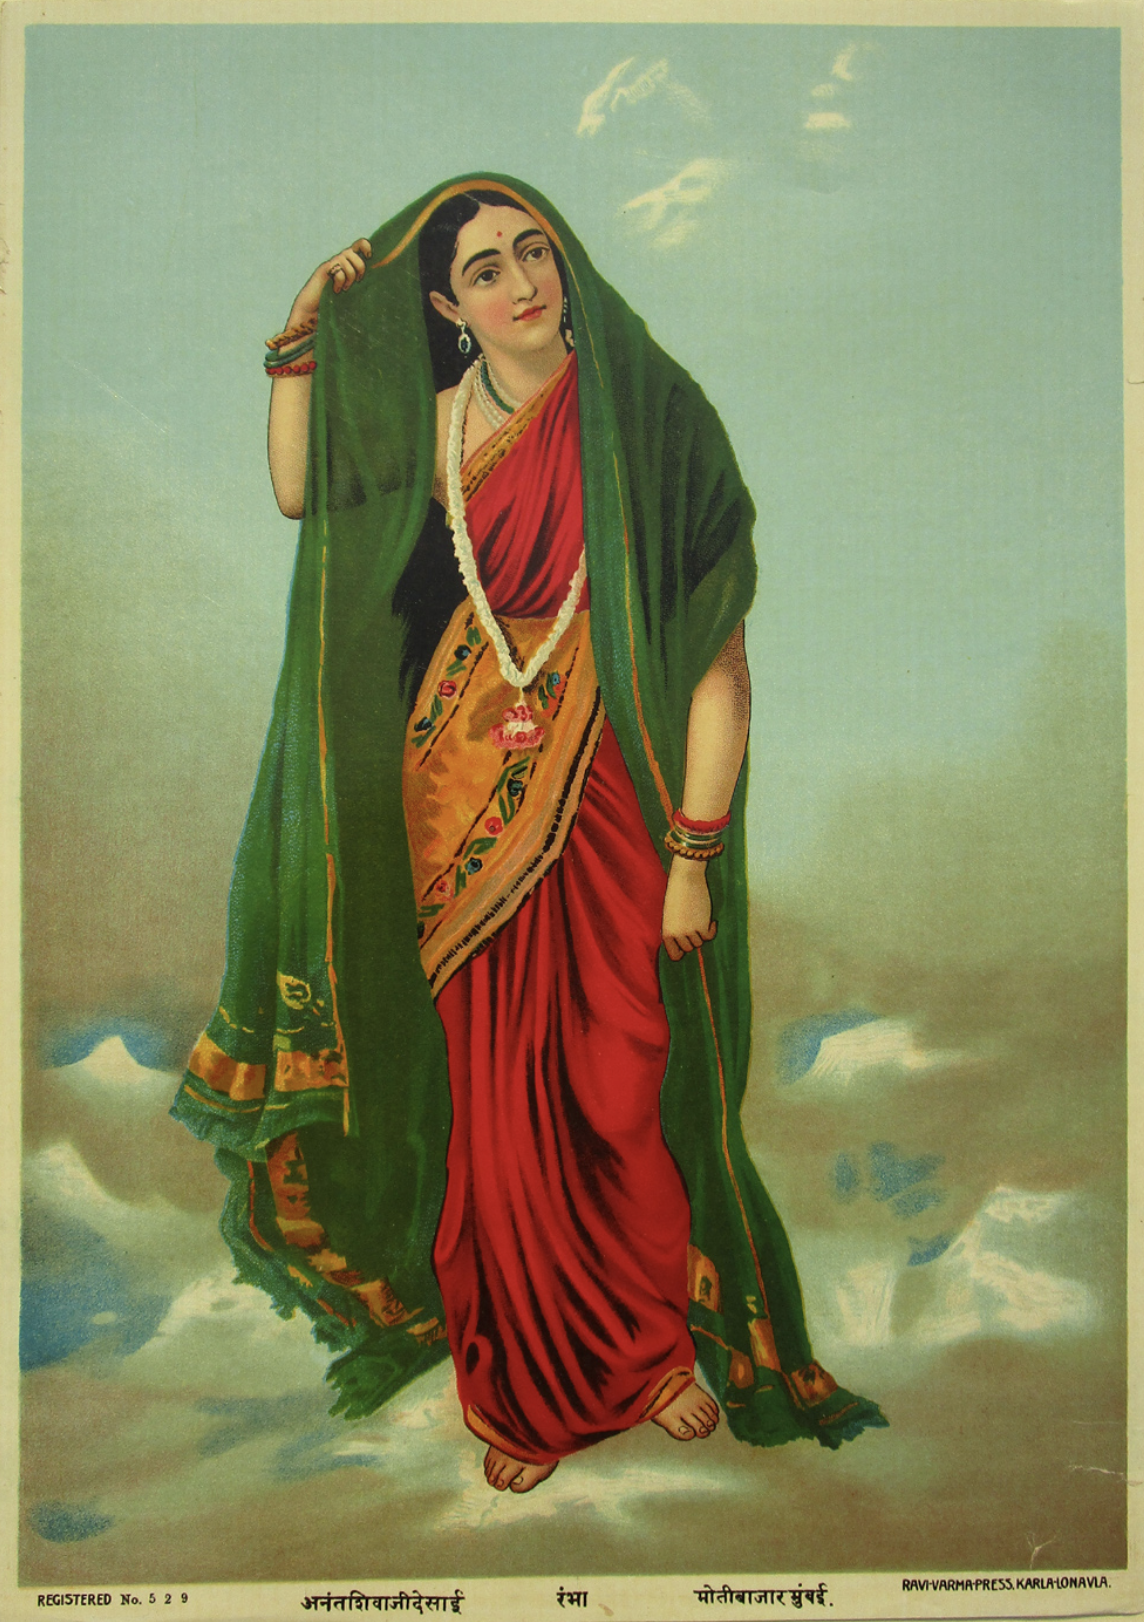 illustration of an Indian woman in traditional garb walking amongst the clouds